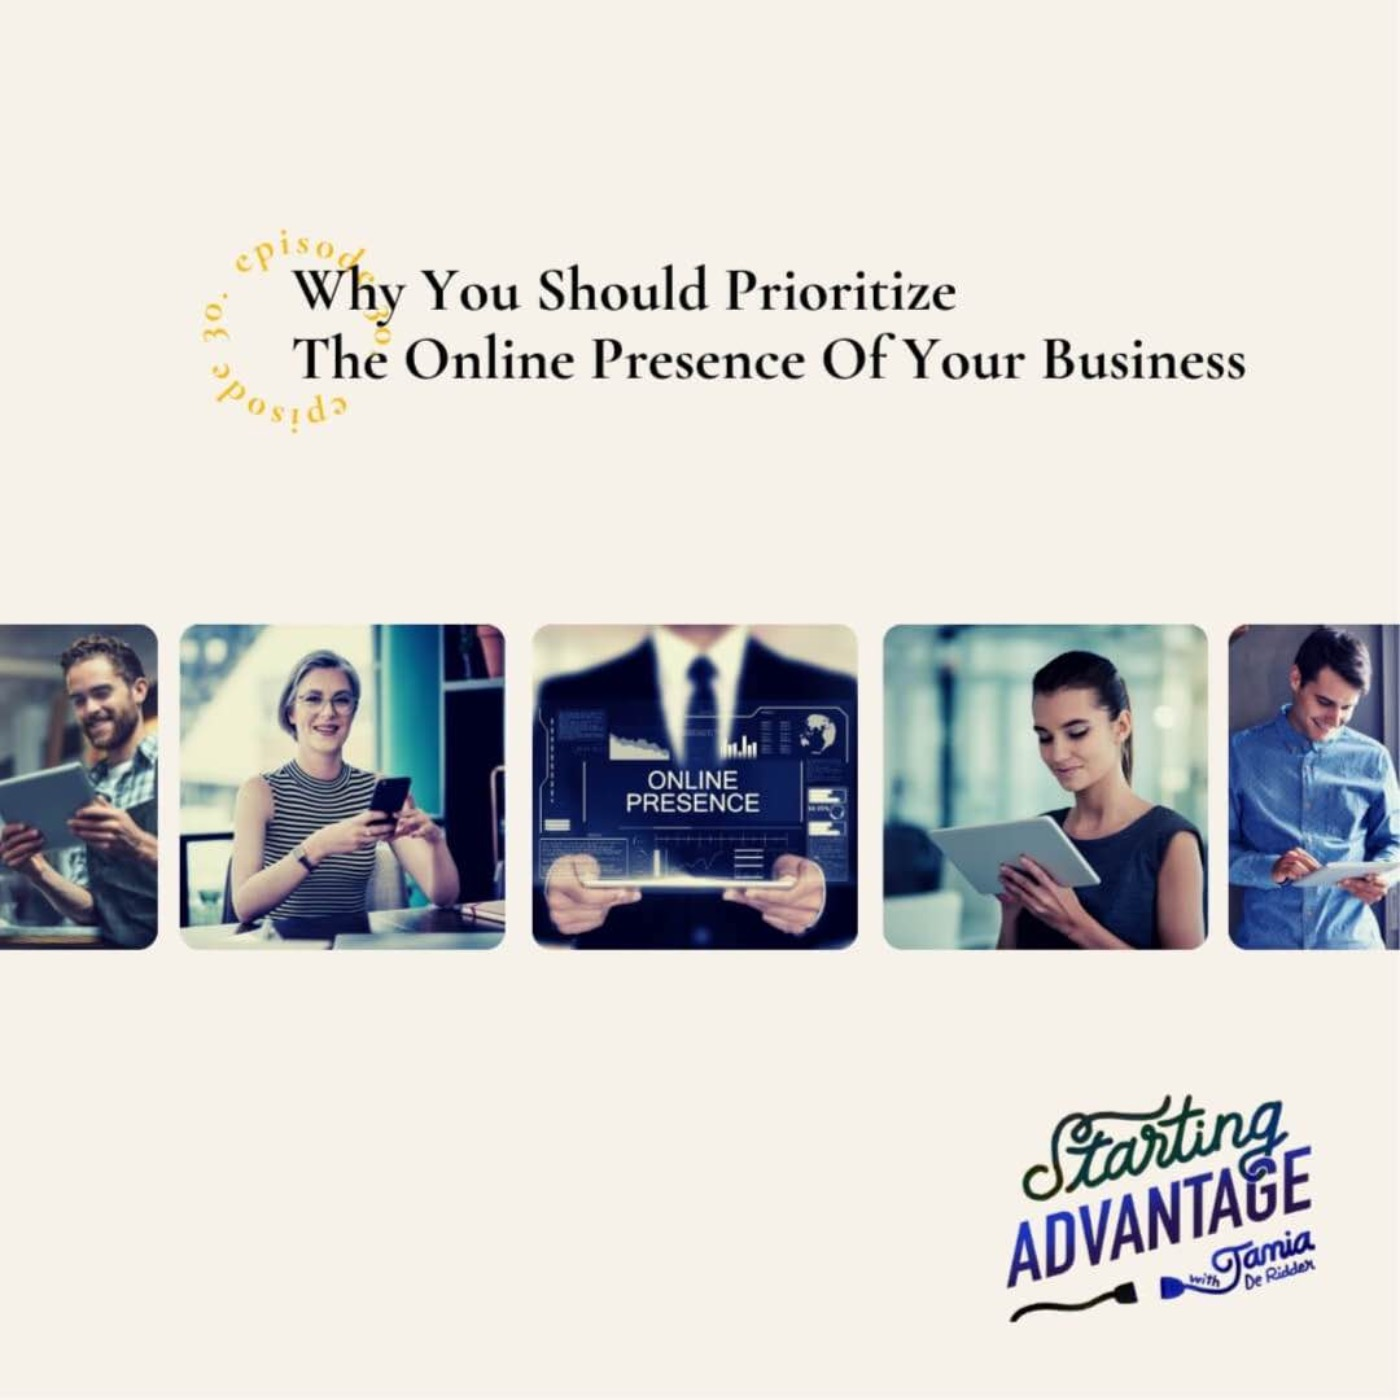 Why You Should Prioritize The Online Presence Of Your Business